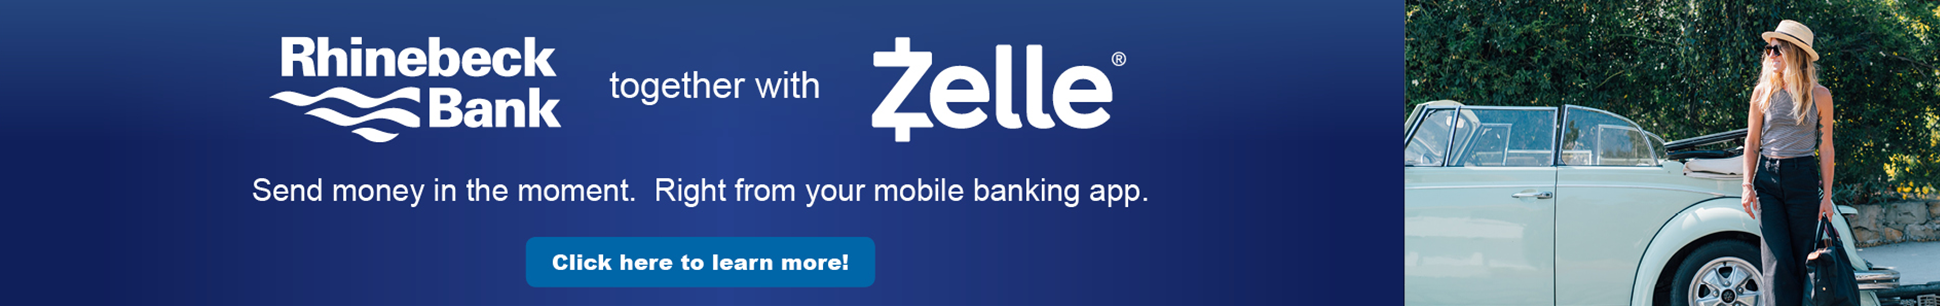 send money in the moment with zelle. Click to learn More